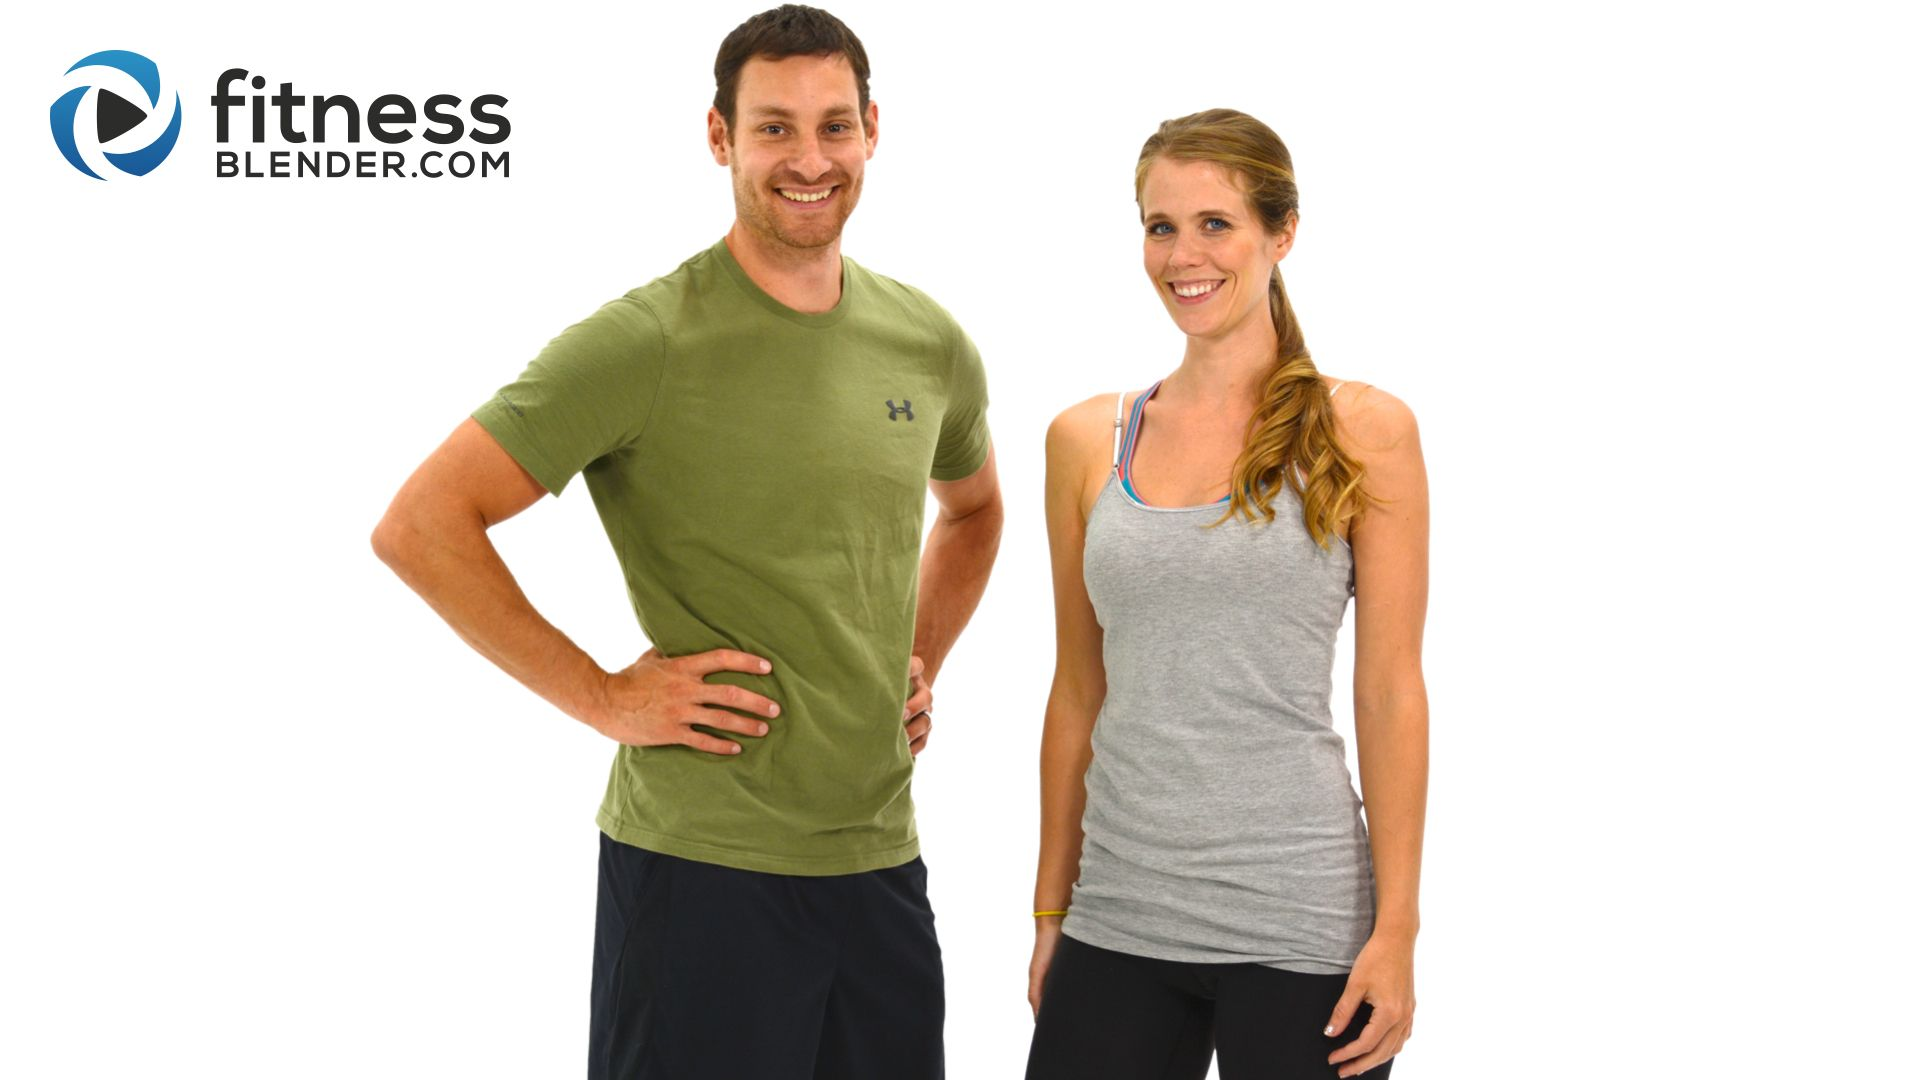 Day 2: Fitness Blender's 5 Day Workout Challenge to Burn Fat and Build Lean Muscle